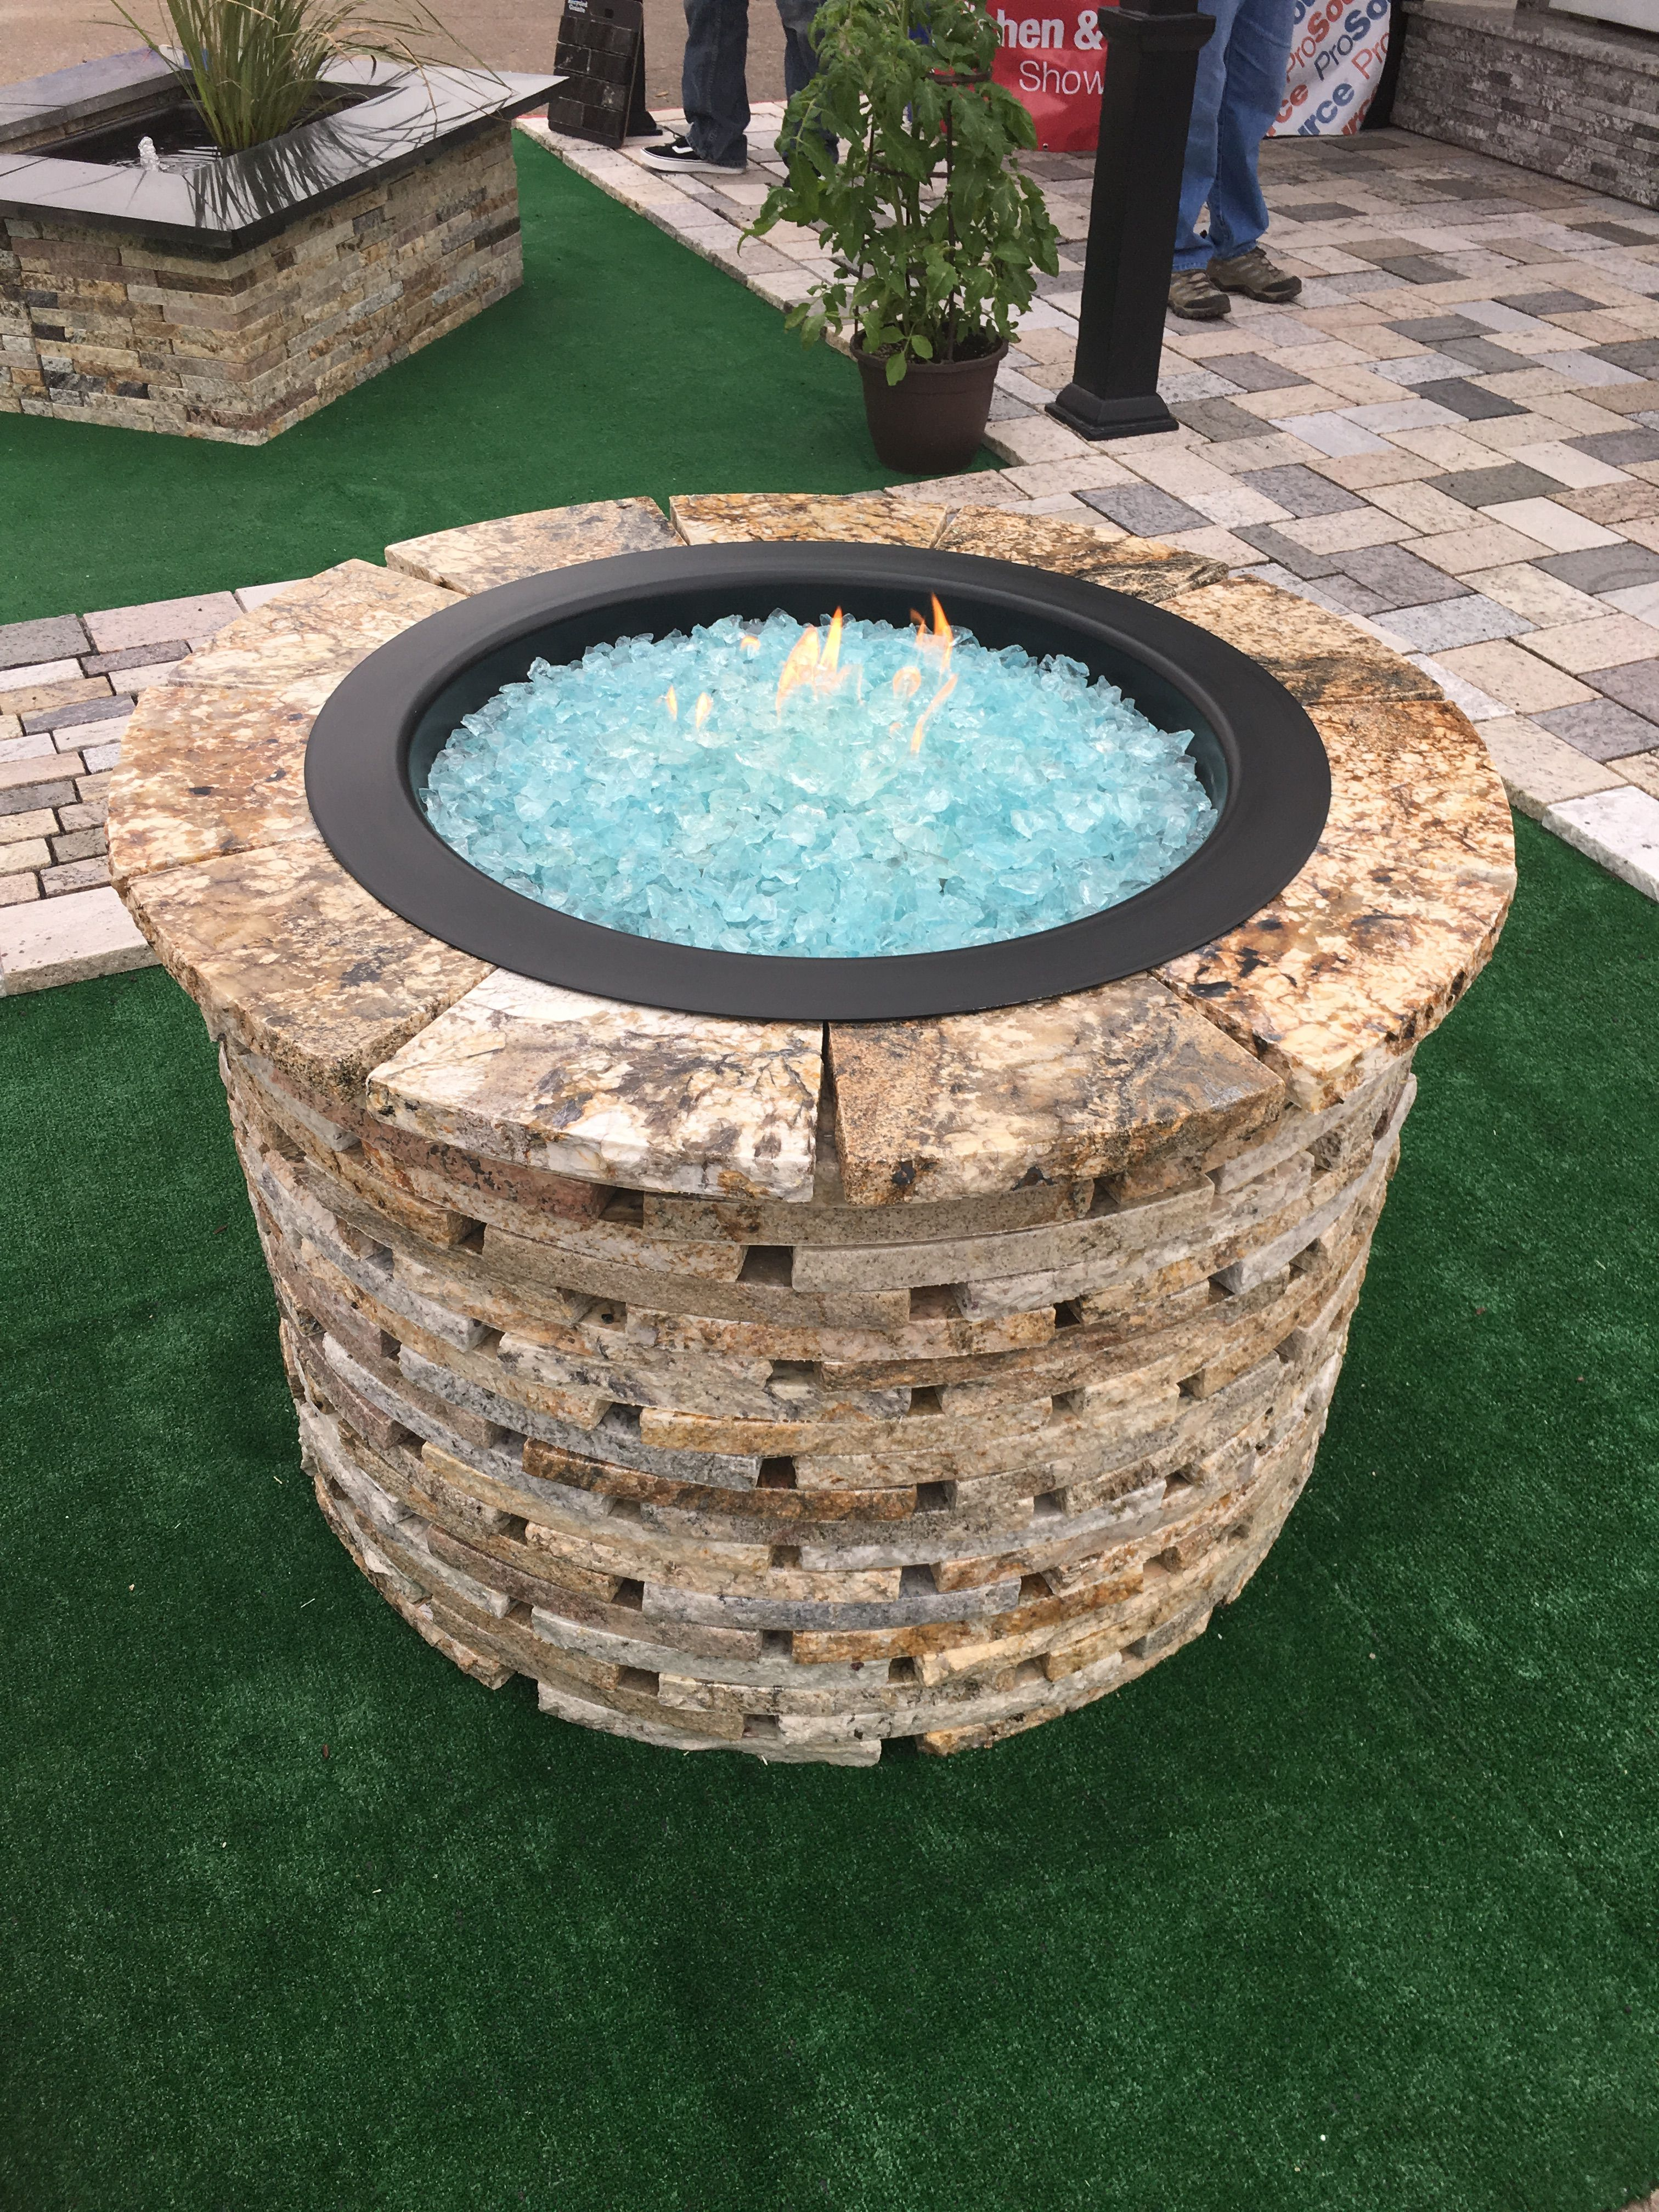 Propane Fire Pit Made From Ae Recycled Granite Blocks And Recycled